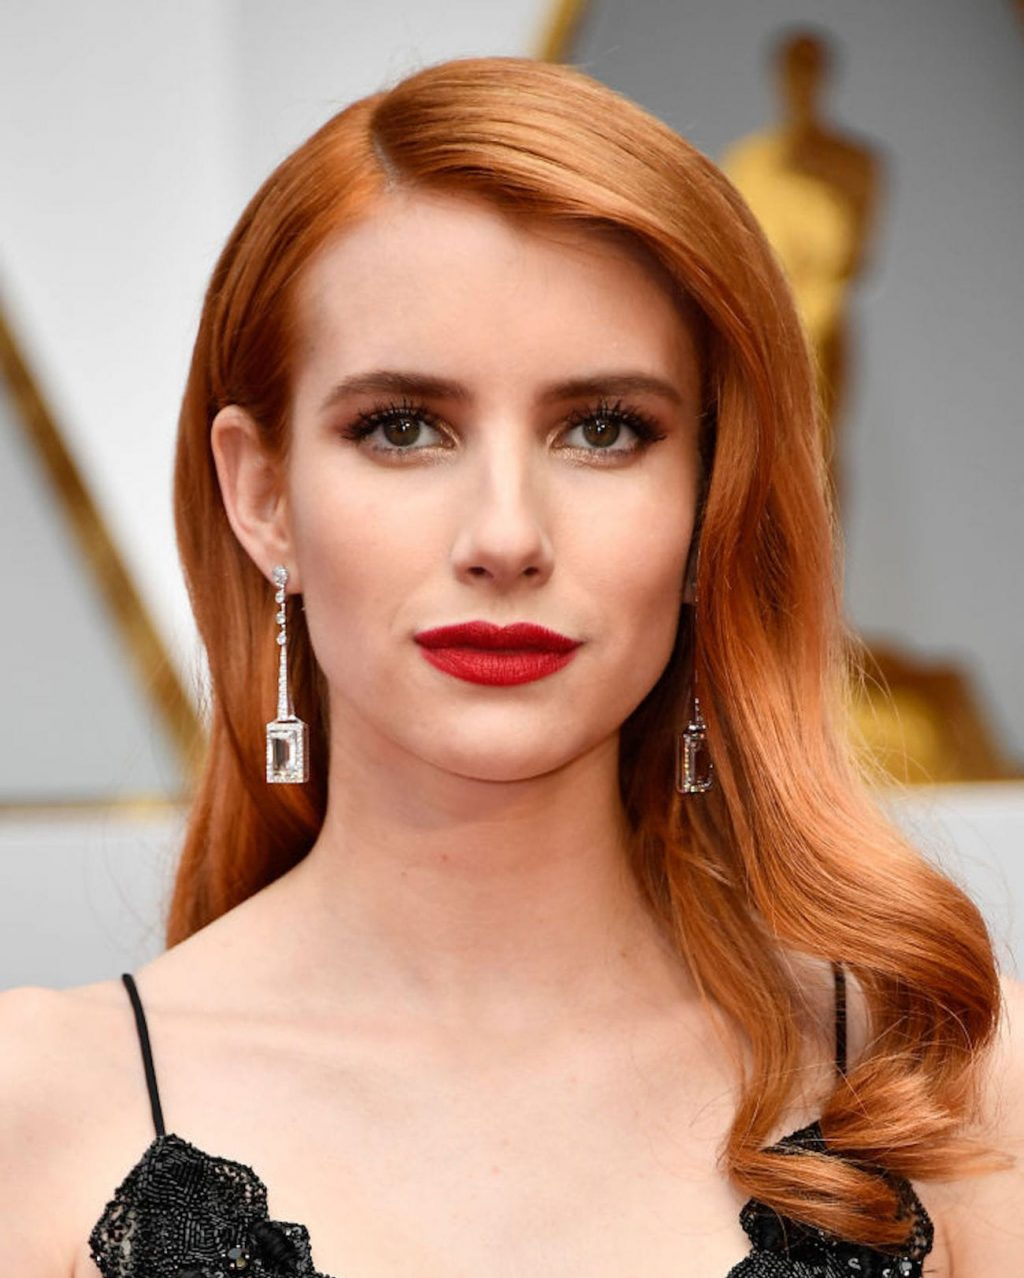 We've Found the Most Foolproof Beauty Look in Oscars History